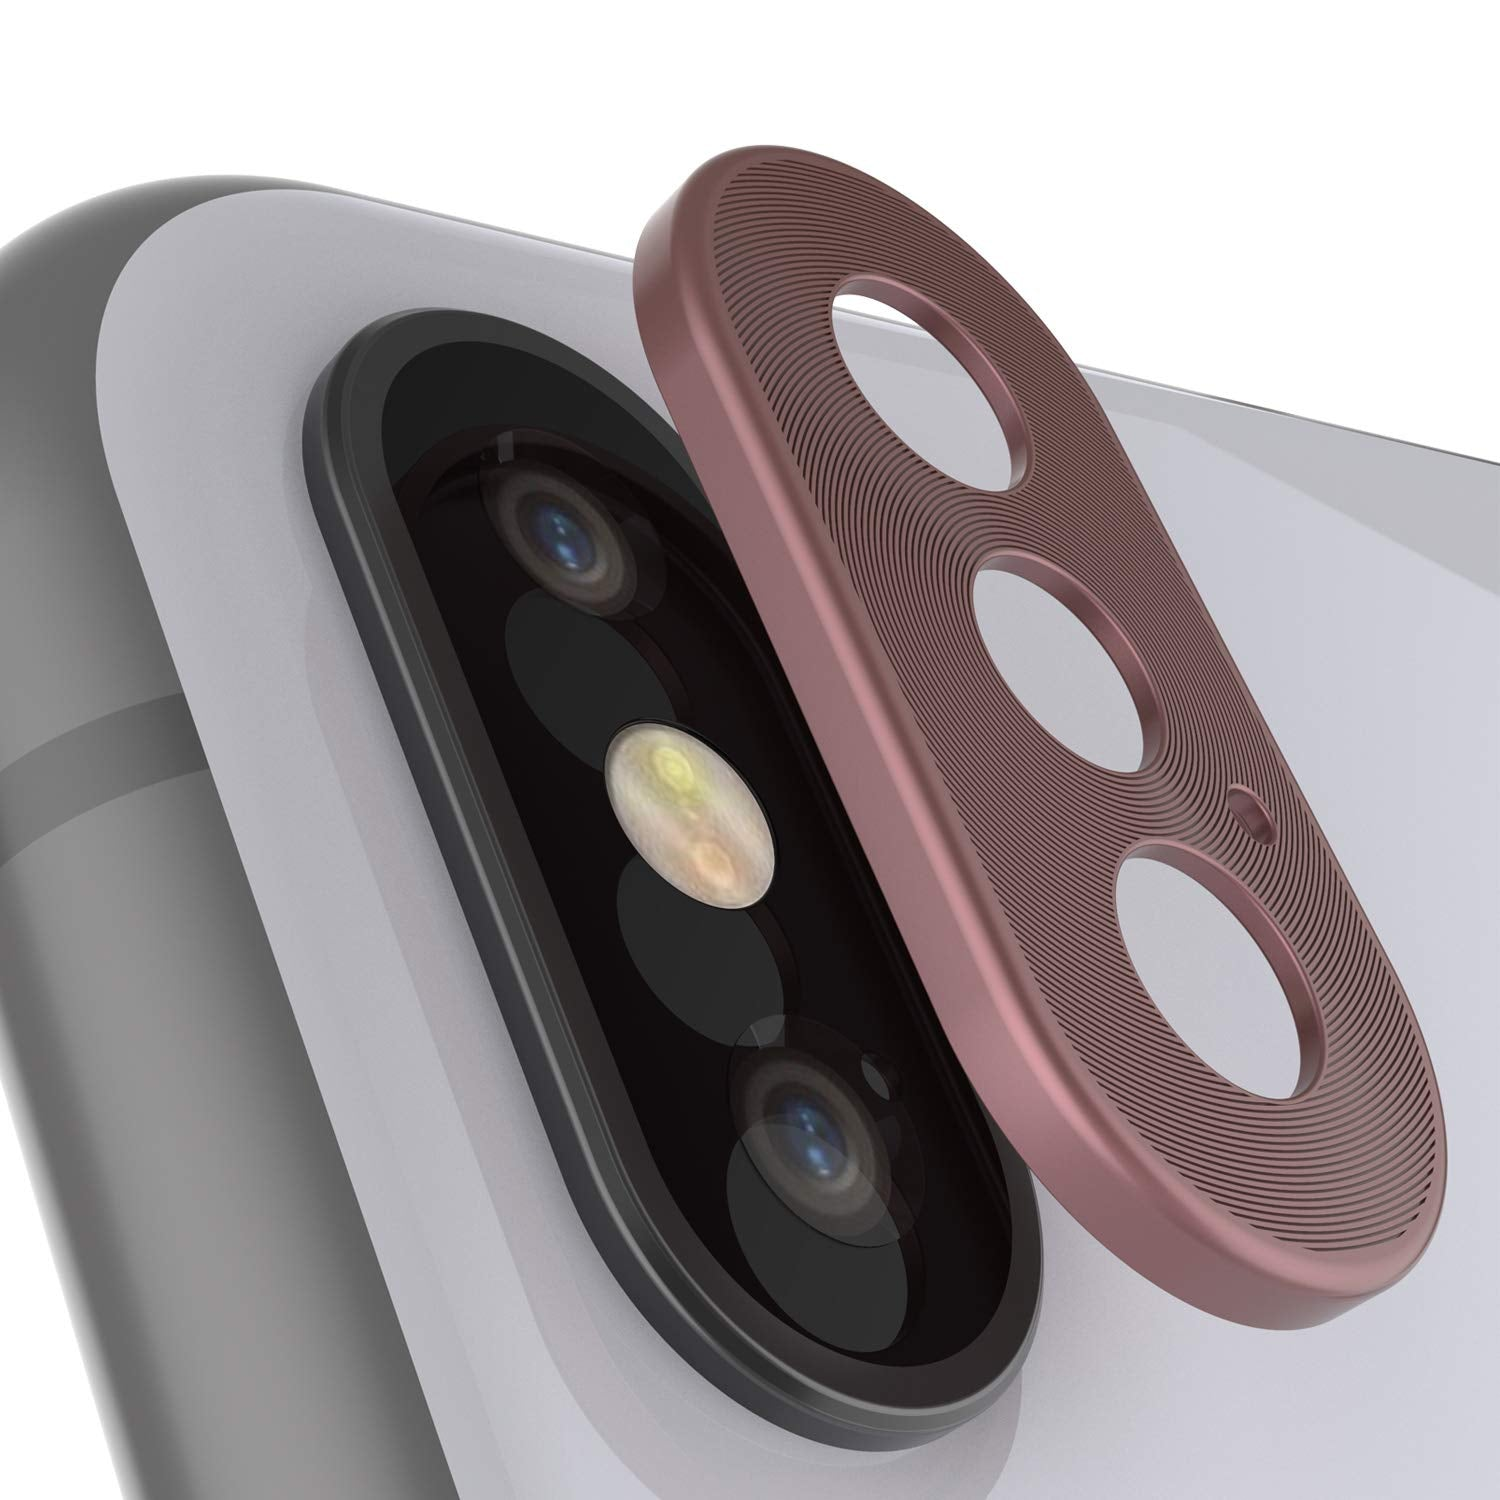 Punkcase iPhone XS Max Camera Protector Ring [Rose-Gold]